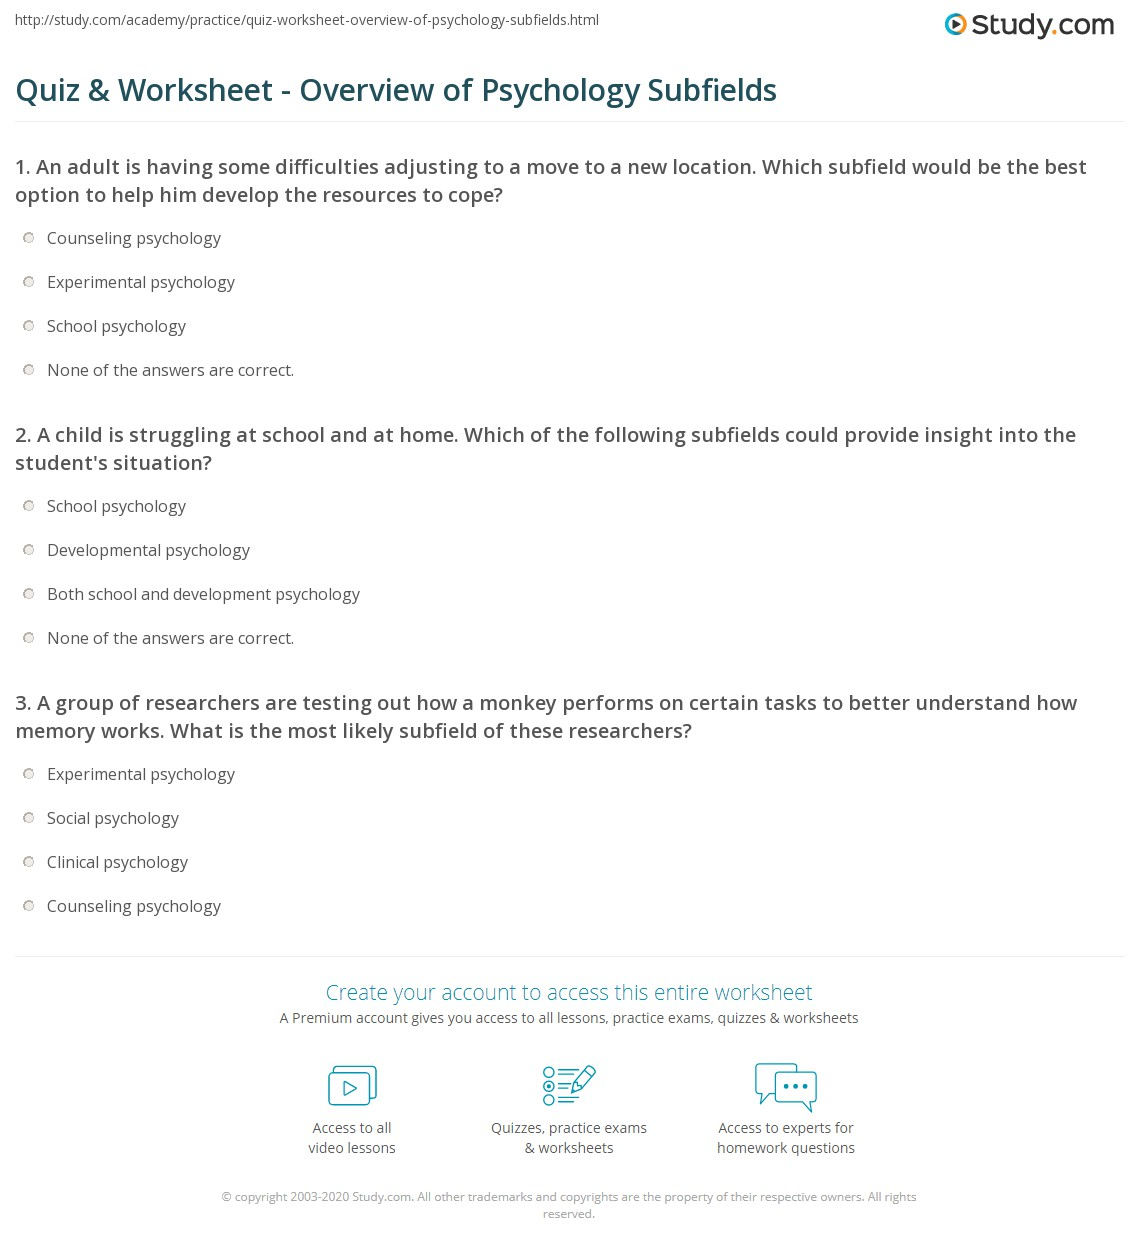 quiz worksheet overview of psychology subfields. Black Bedroom Furniture Sets. Home Design Ideas